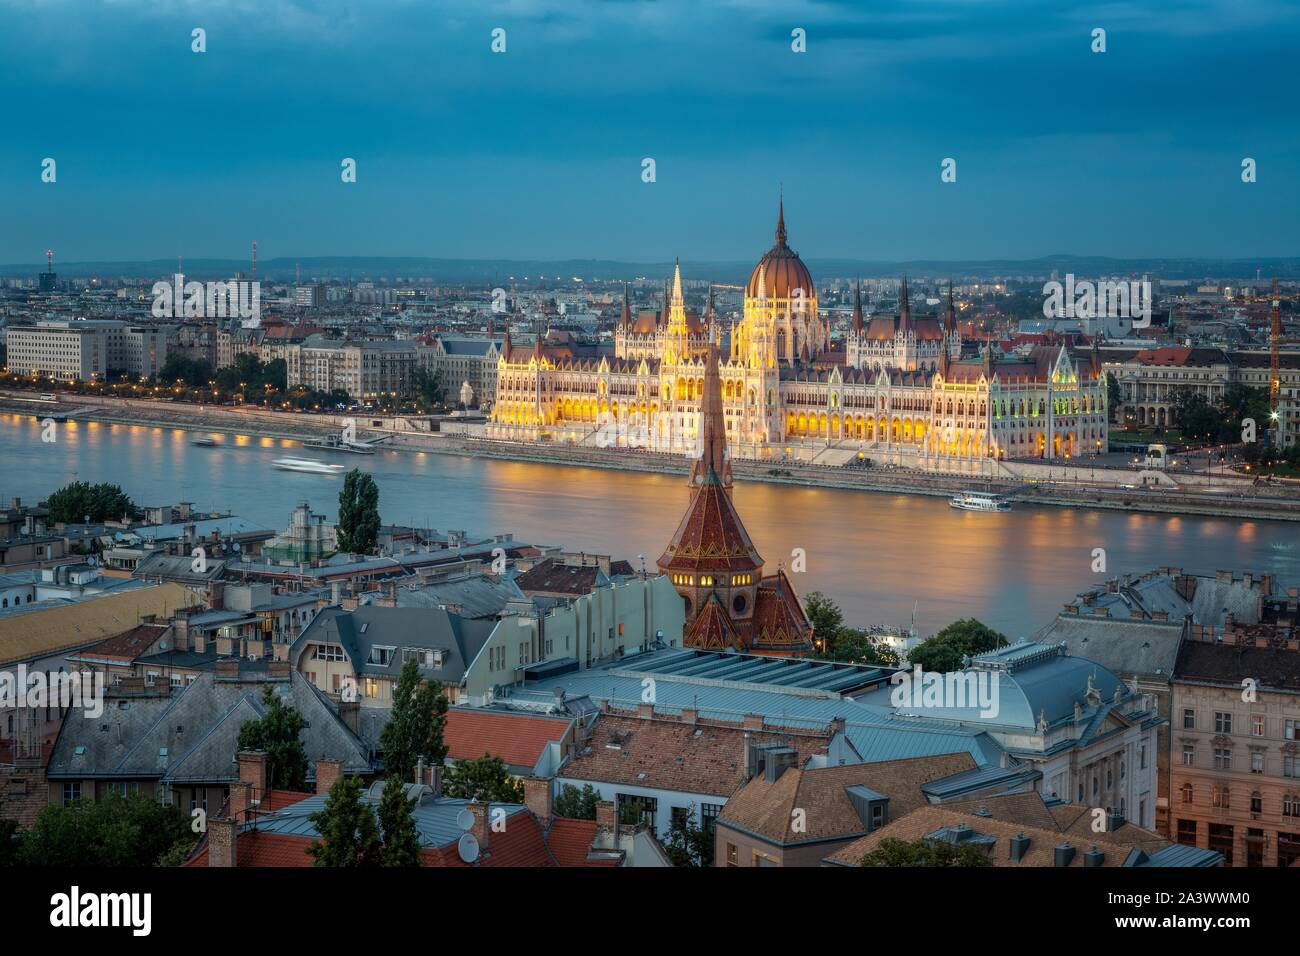 HUNGARIAN PARLIAMENT LIT UP AT TWILIGHT, REFLECTIONS IN THE DANUBE, BUDAPEST, HUNGARY Stock Photo